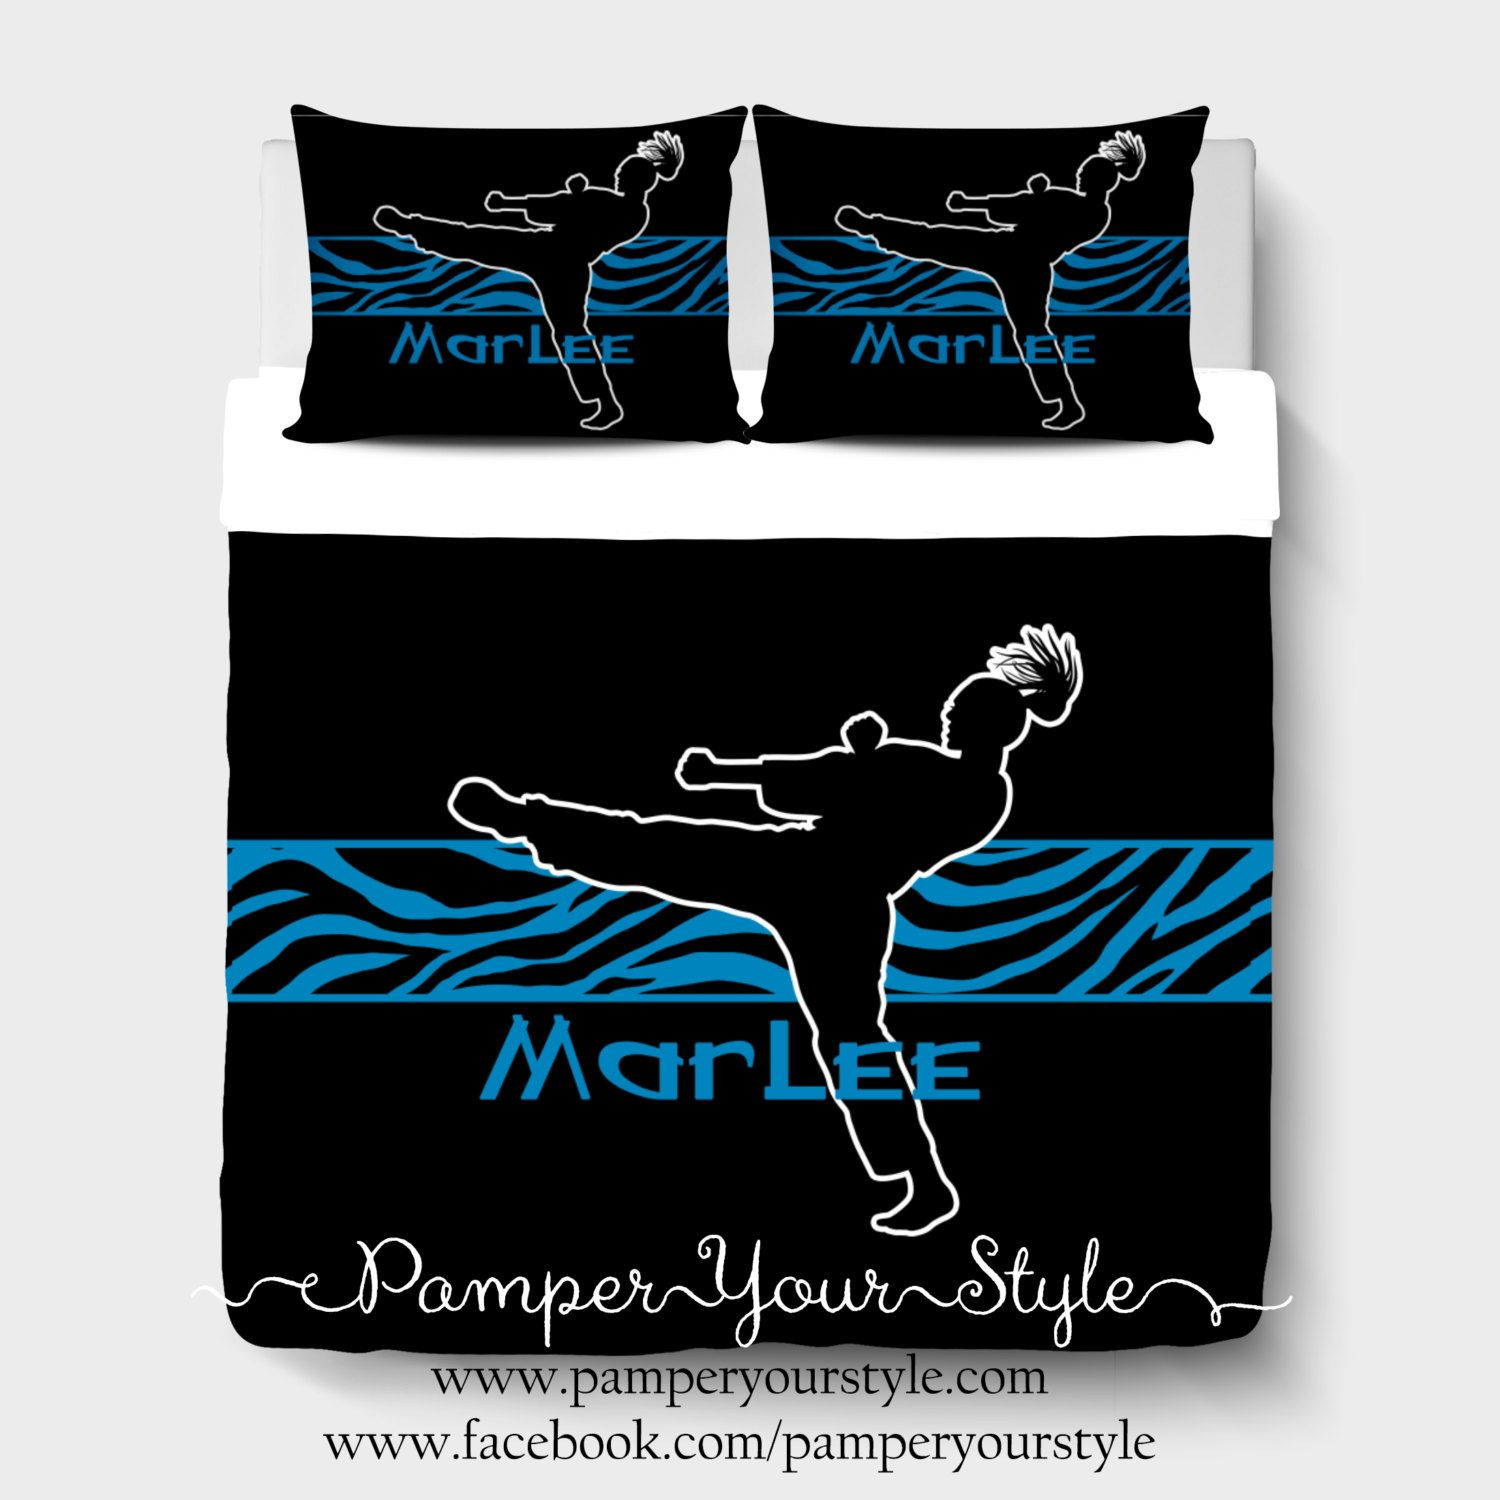 Karate Comforter Martial Arts Bedding S Bedroom Avaliable In Any Color Or Style Design Your Own By Pamperyourstyle On Etsy